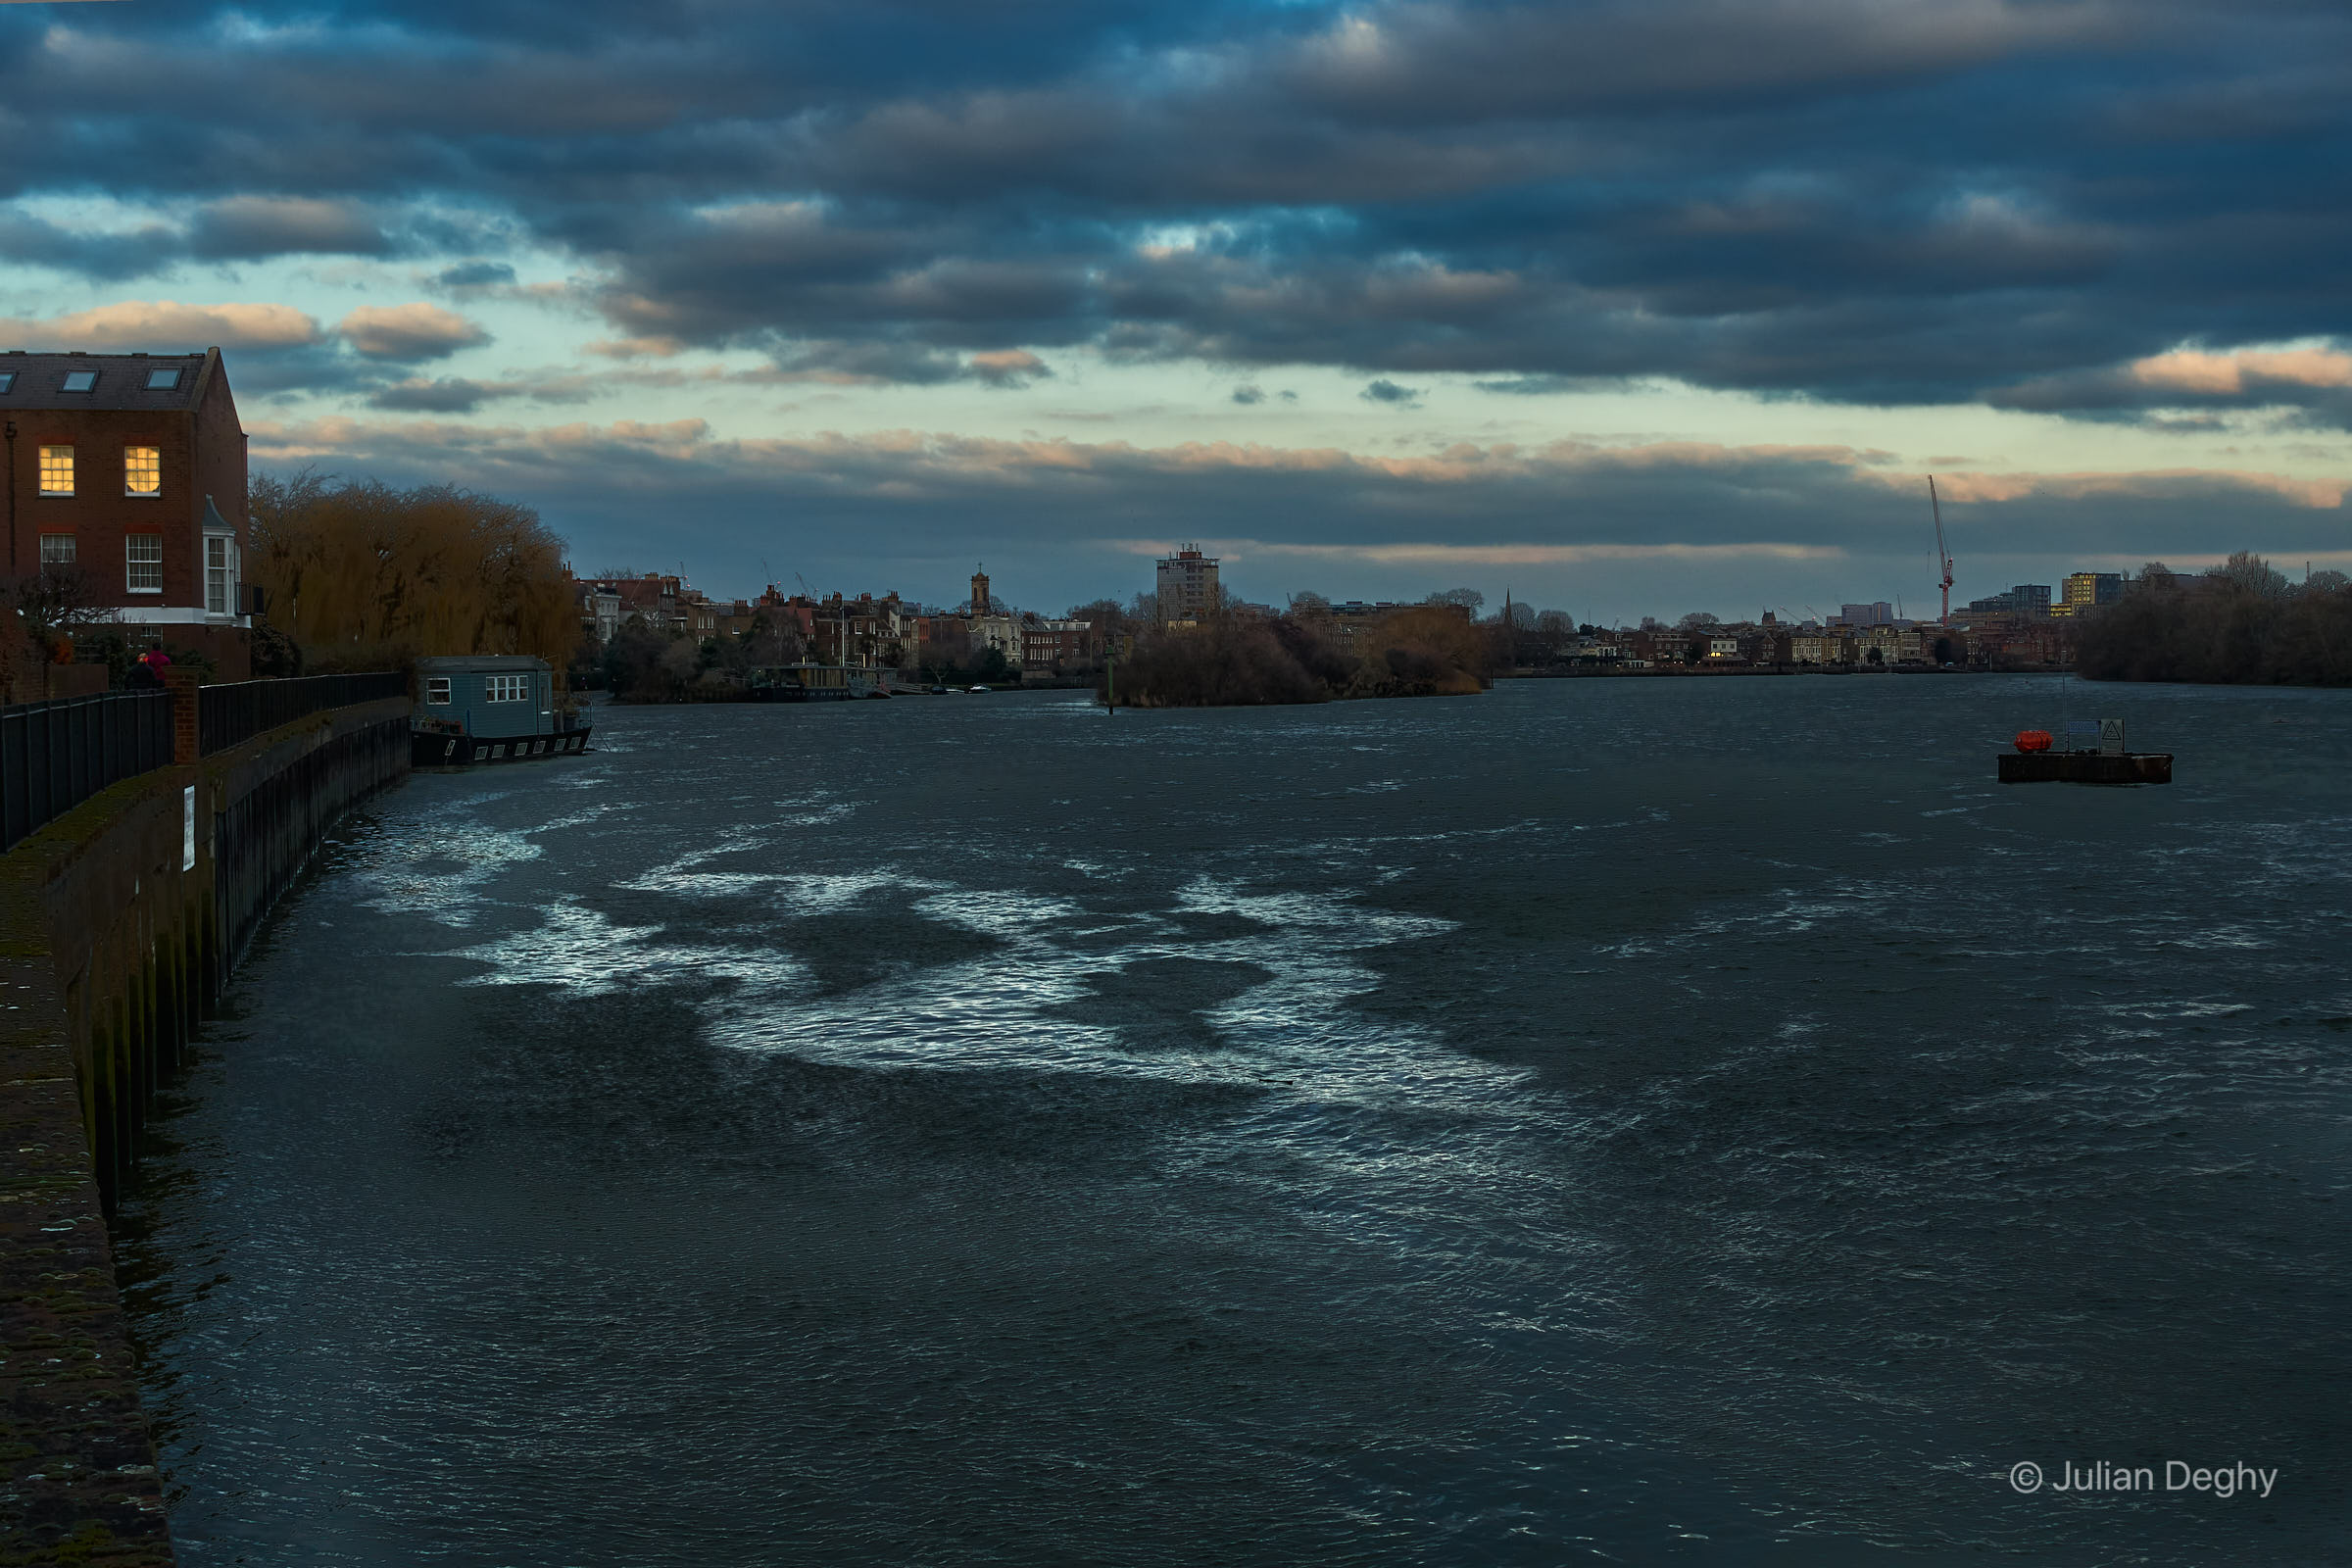 Looking Downstream on the Thames from Chiswick Mall